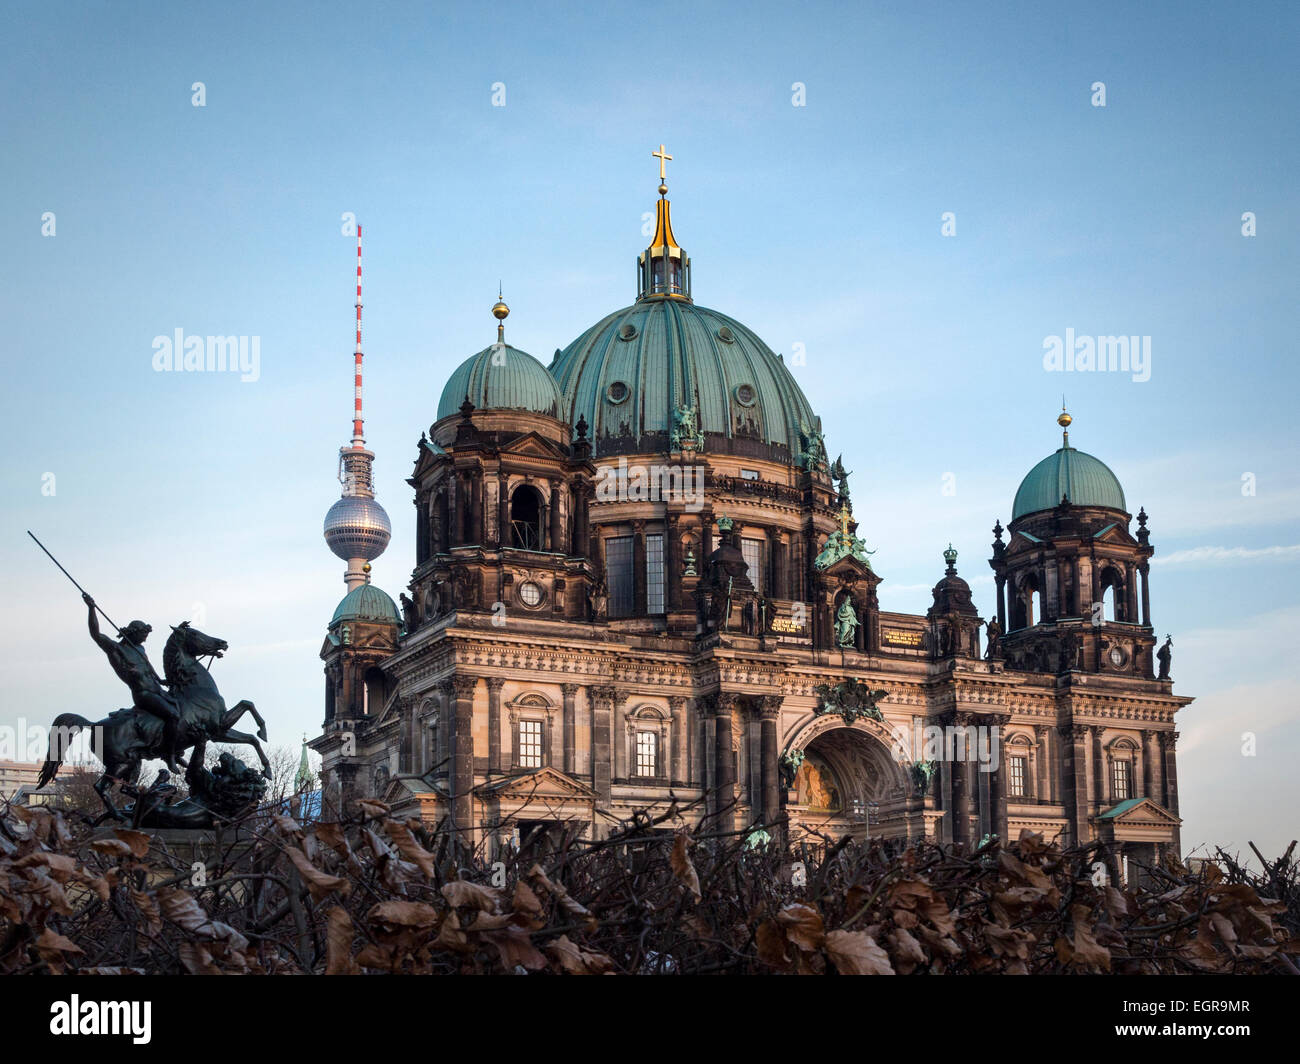 Berlin Dome, Berliner Dom, Berlin cathedral, Protestant Evangelical church, Baroque style building with green dome - Stock Image